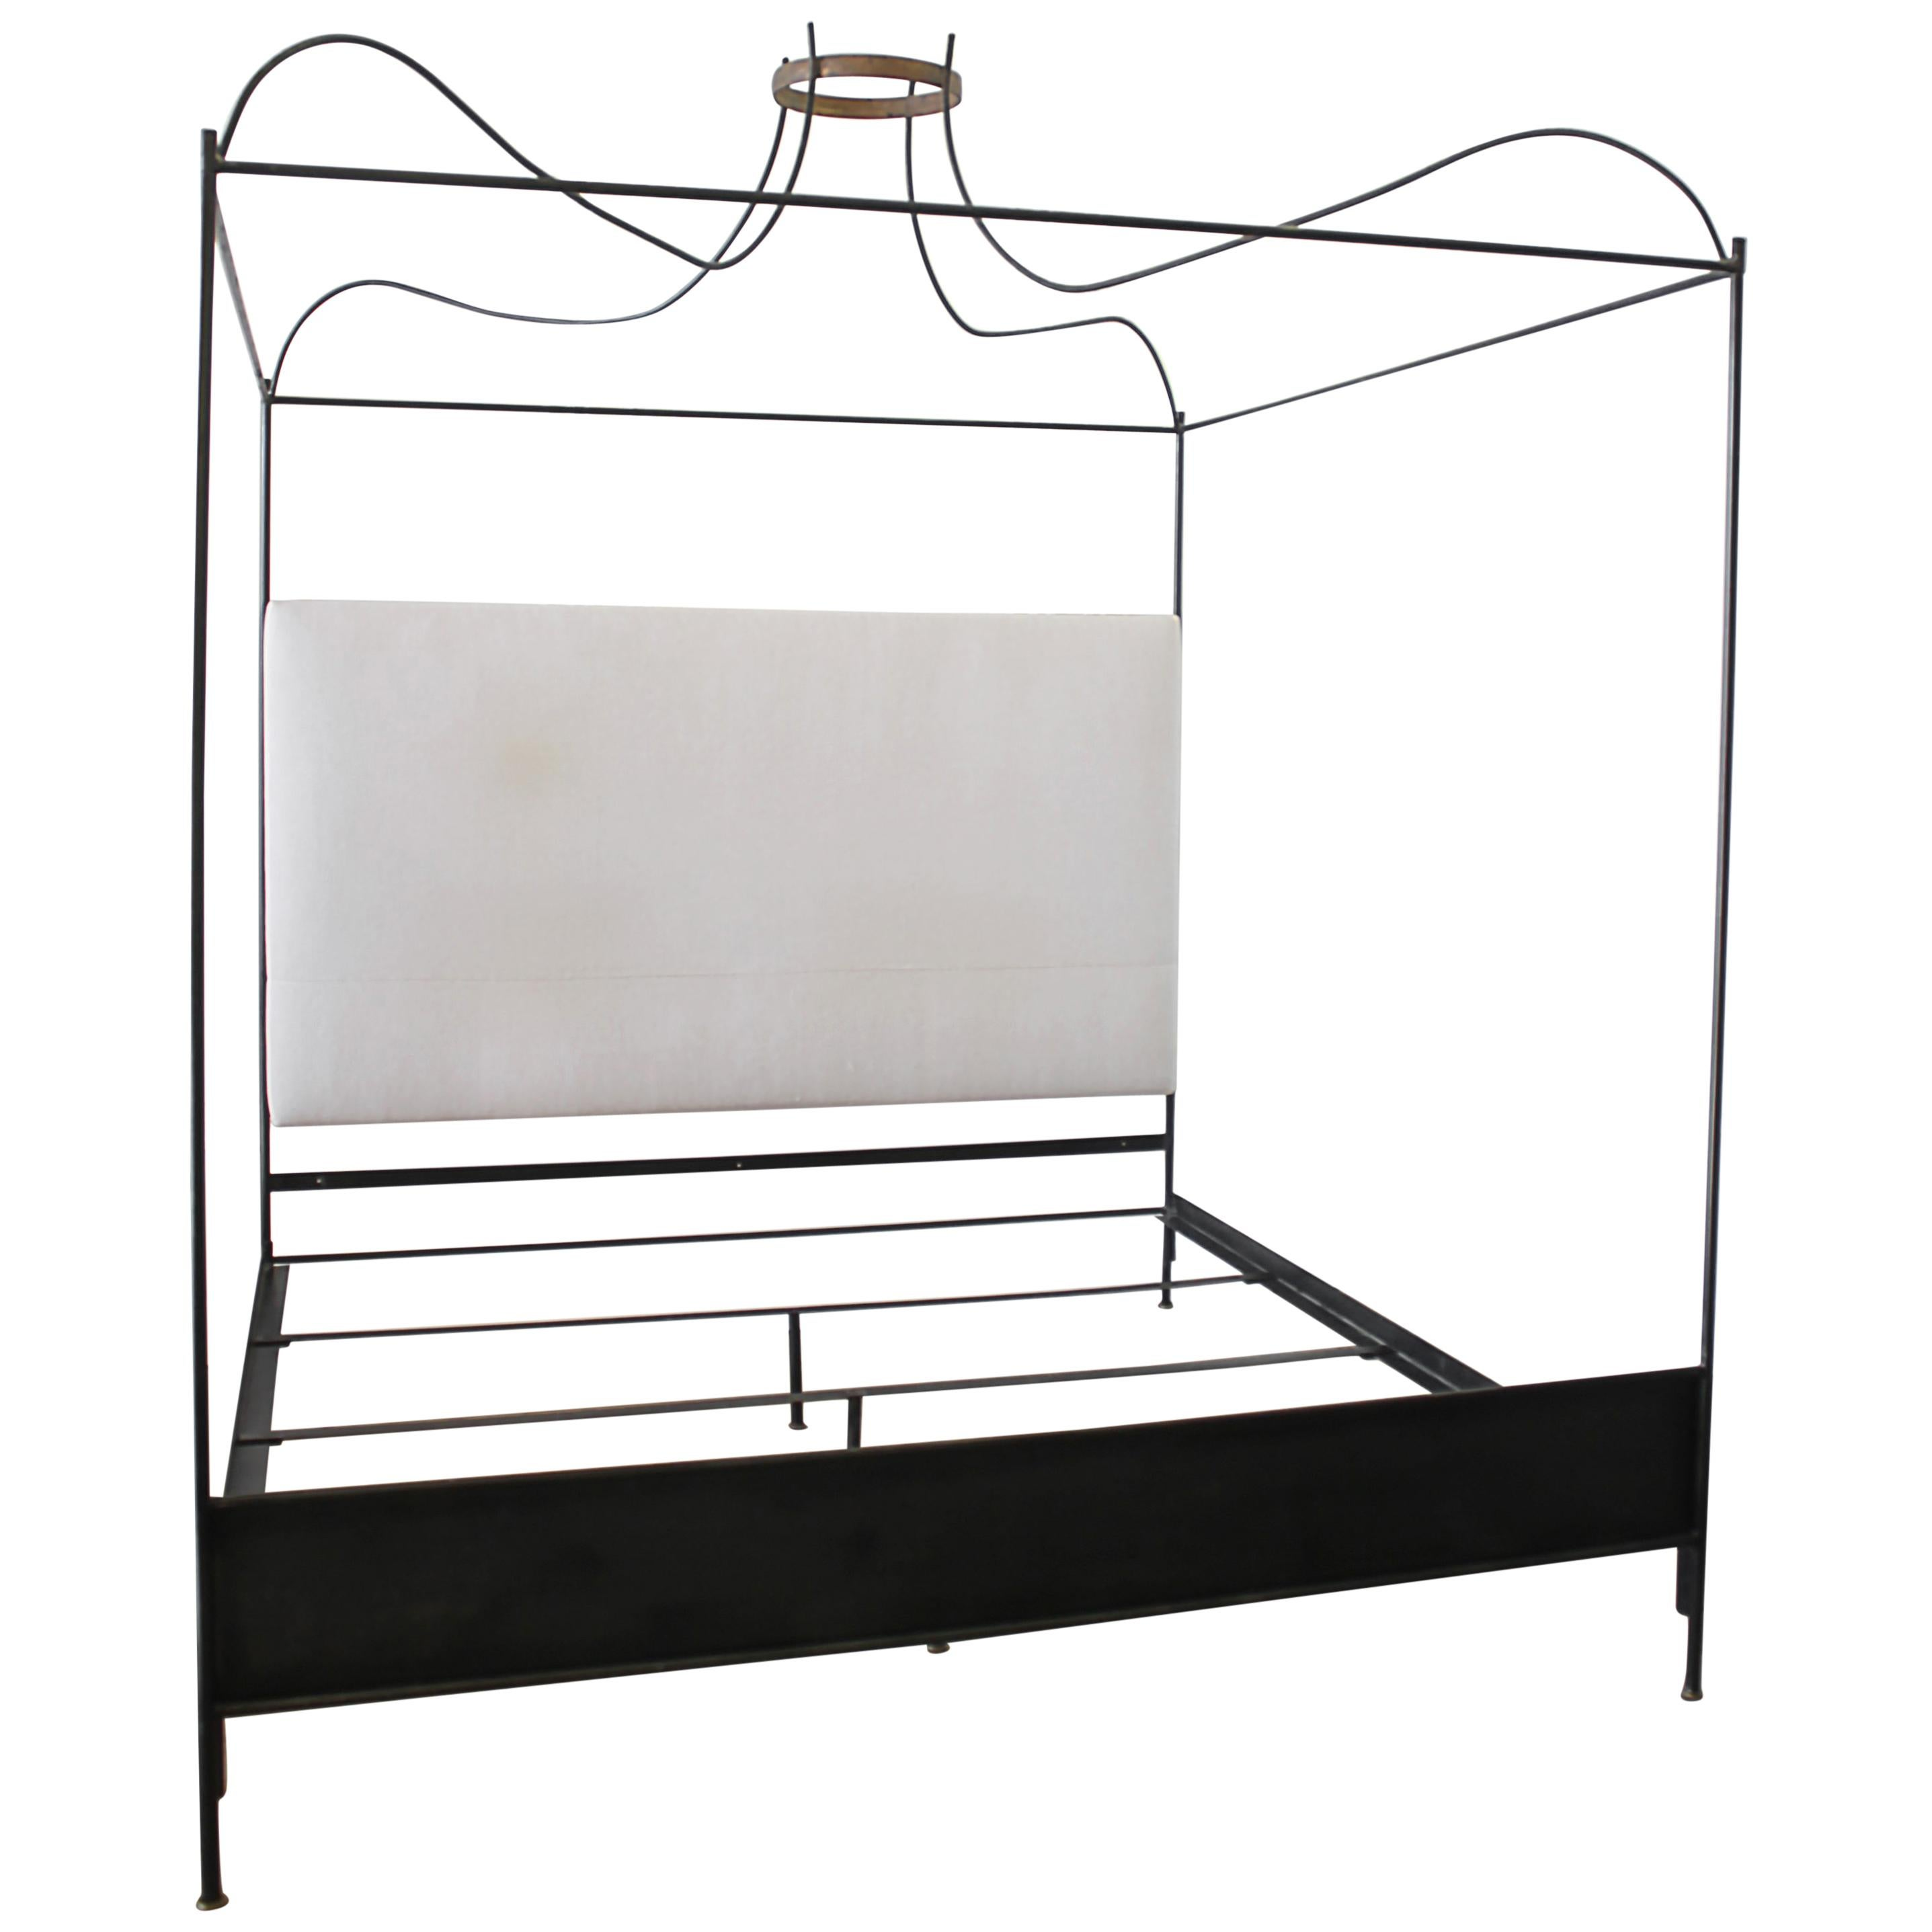 King Size Venetian Iron Canopy Bed with Upholstered Antique Linen Headboard For Sale  sc 1 st  1stDibs & King Size Venetian Iron Canopy Bed with Upholstered Antique Linen ...